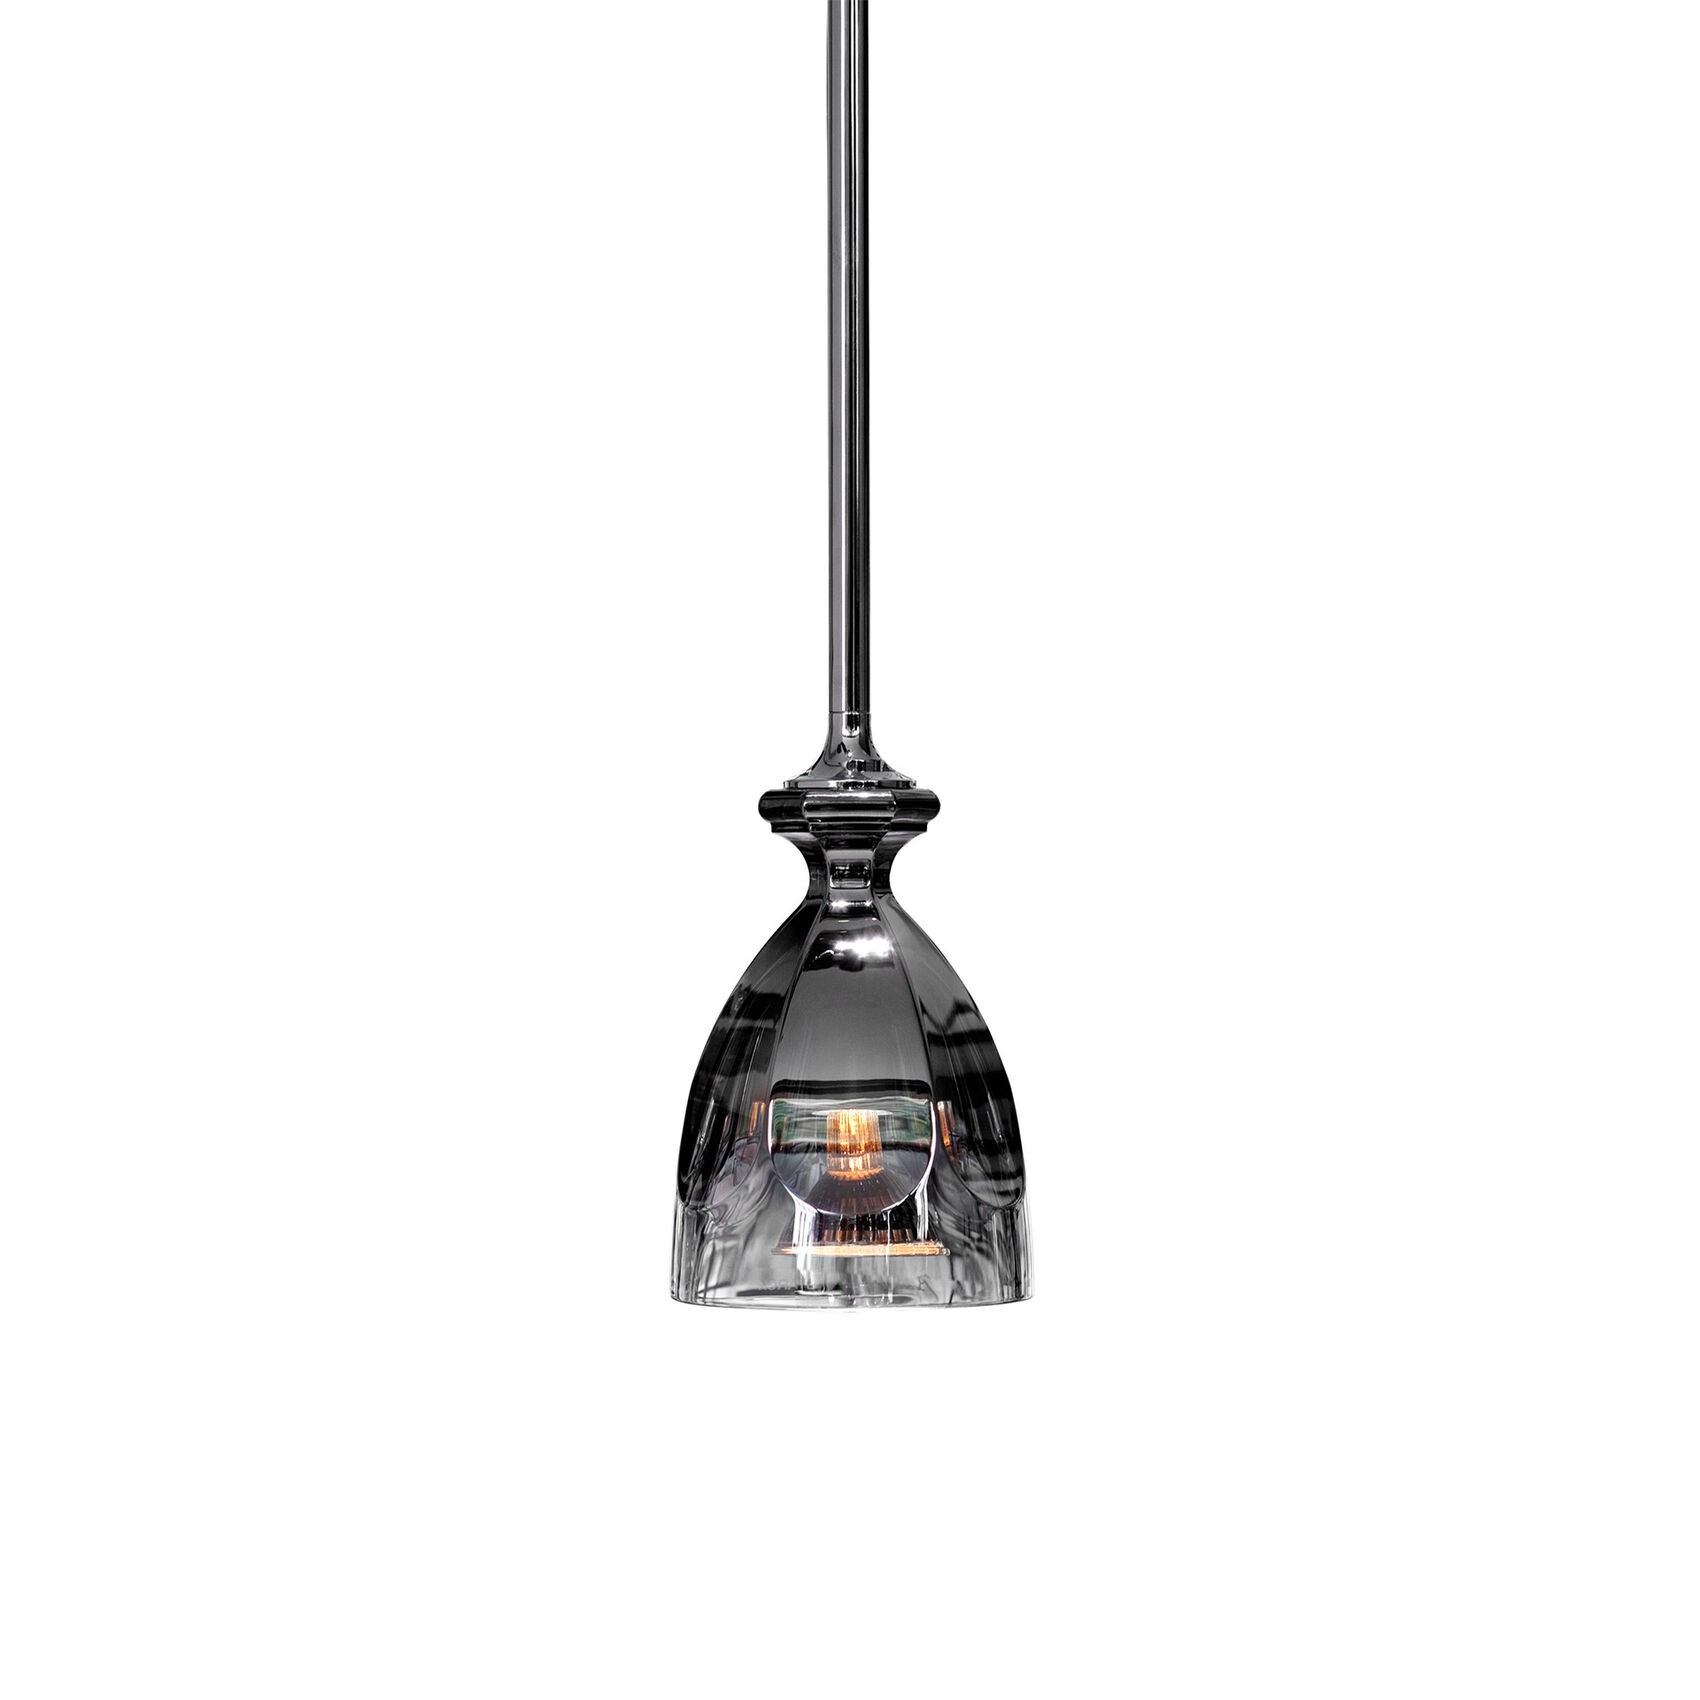 Harcourt Pendant Light Hic